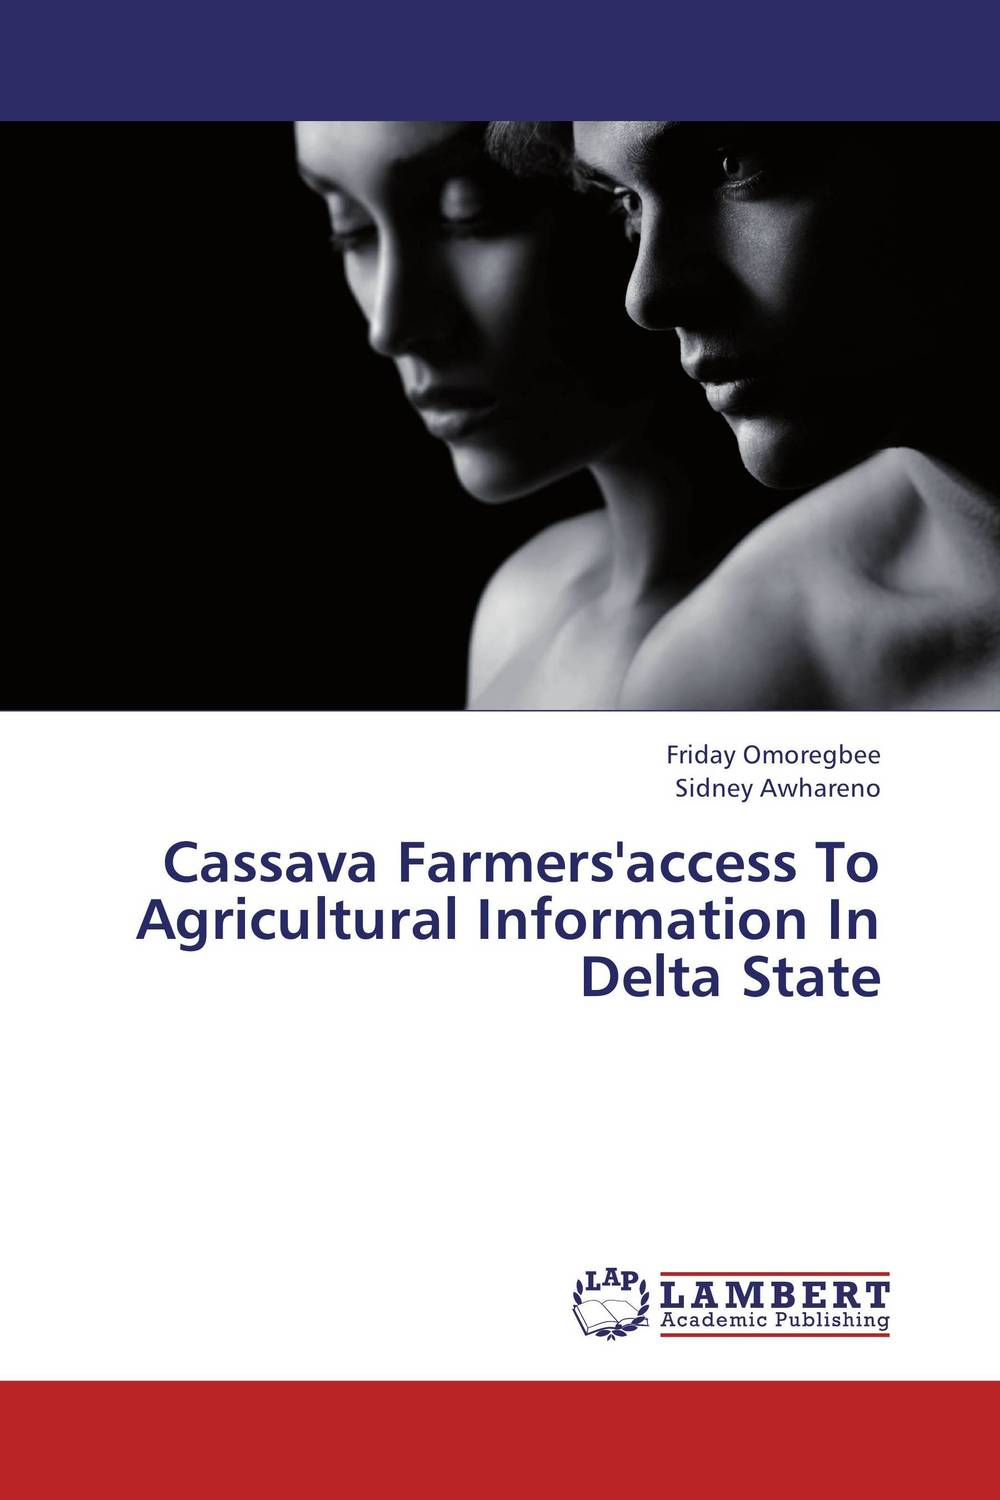 Cassava Farmers'access To Agricultural Information In Delta State tewodros ayalew dejene agricultural information system